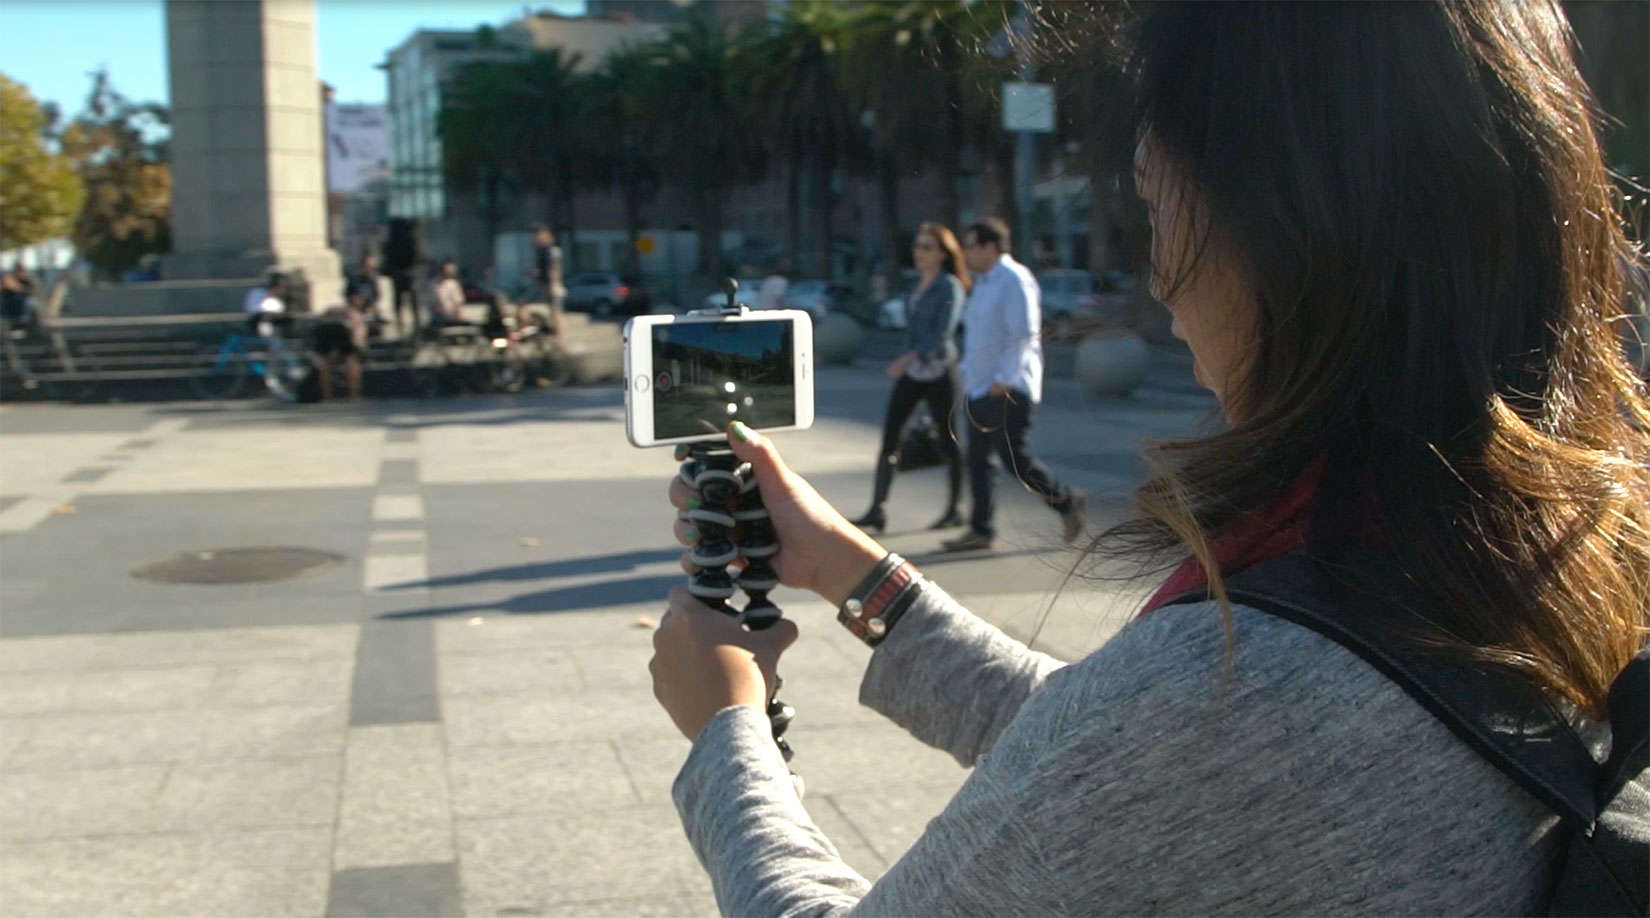 Cielo de la Paz can provide steady guidance on how to shoot video with the iPhone.